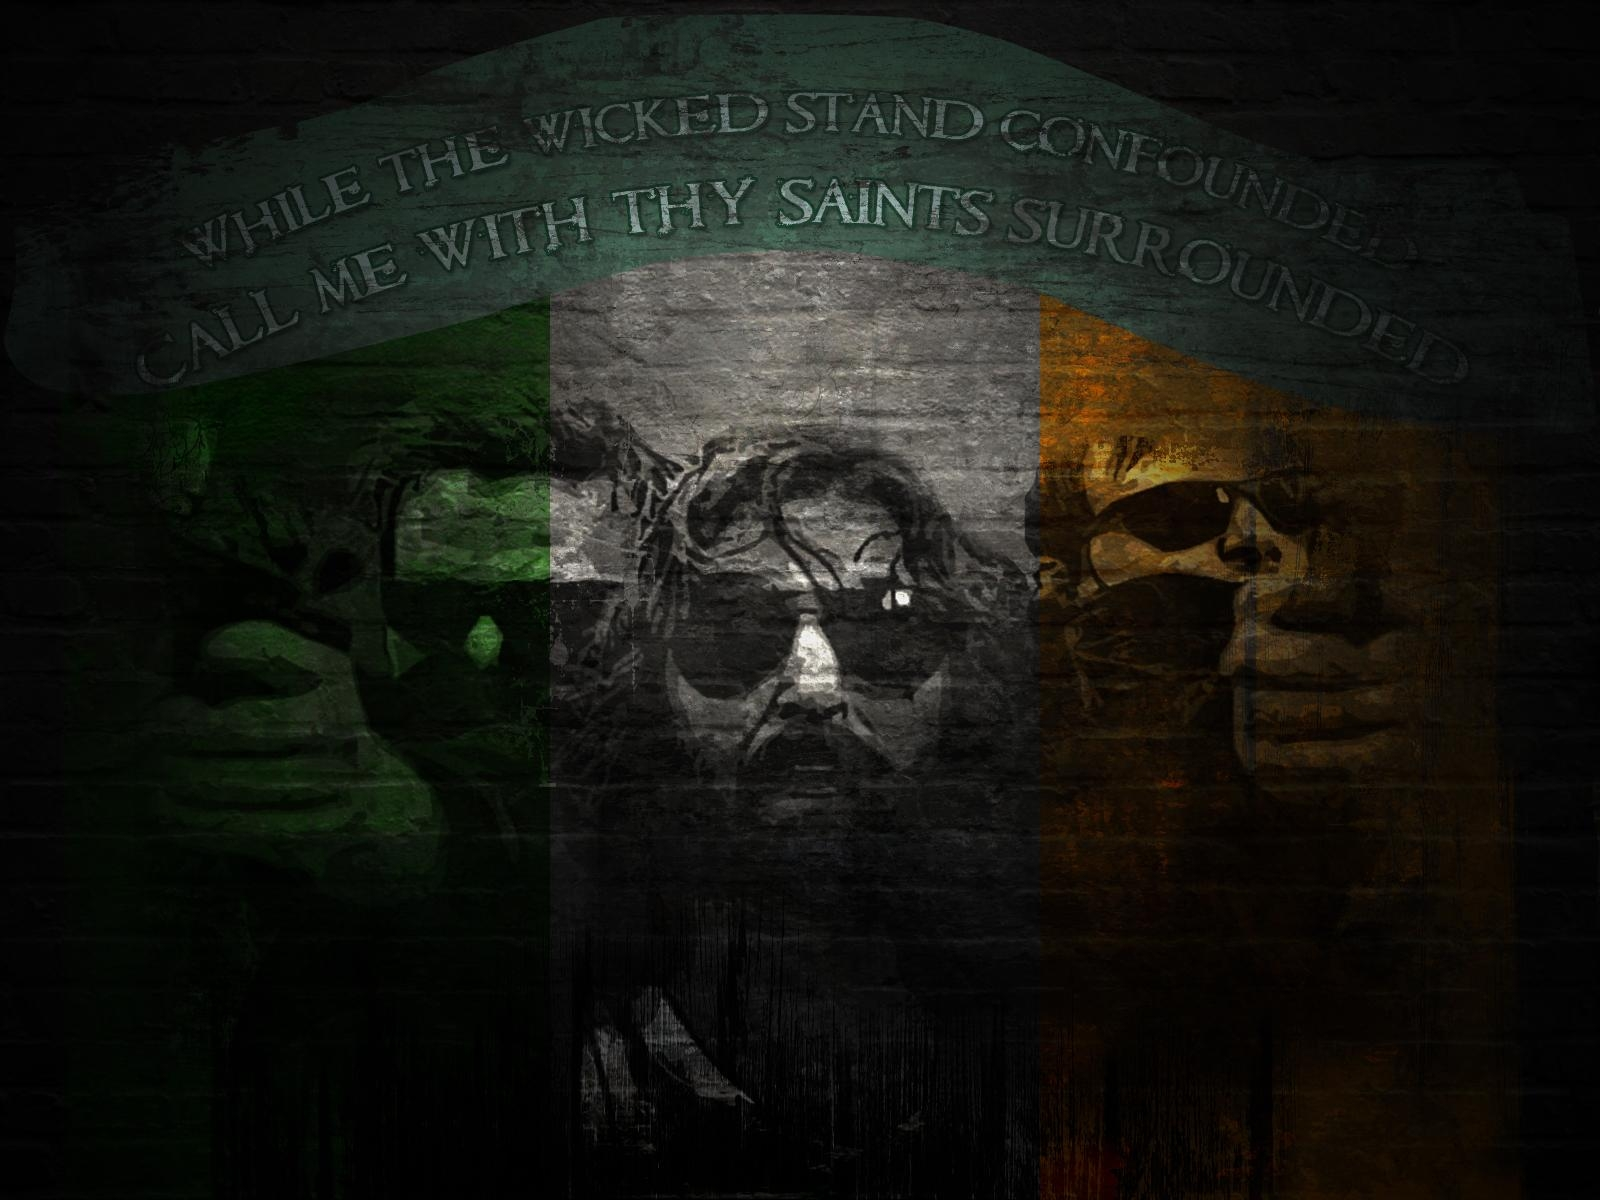 Boondock Saints Armoryatwistedillusion On Deviantart Pertaining To Boondock Saints Wall Art (View 1 of 20)